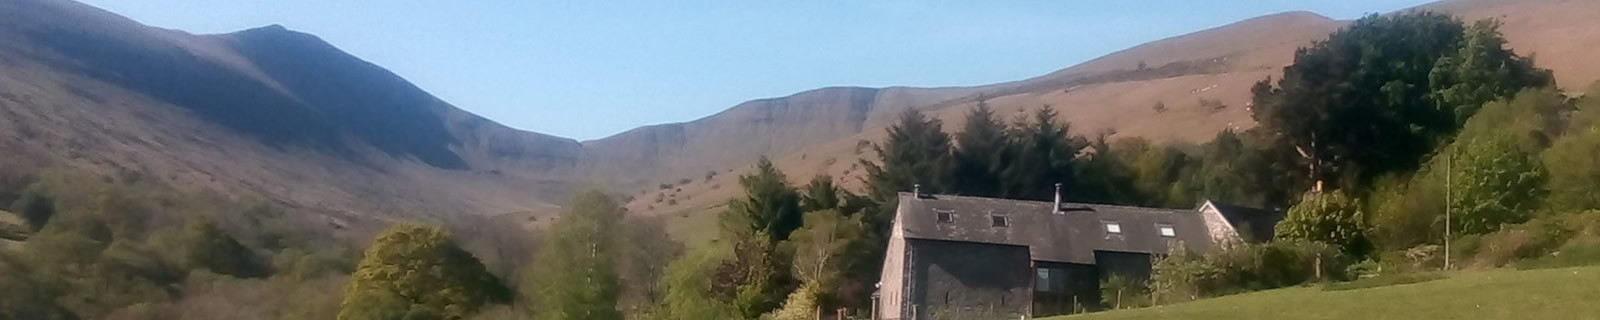 Brecon Beacons Skyline